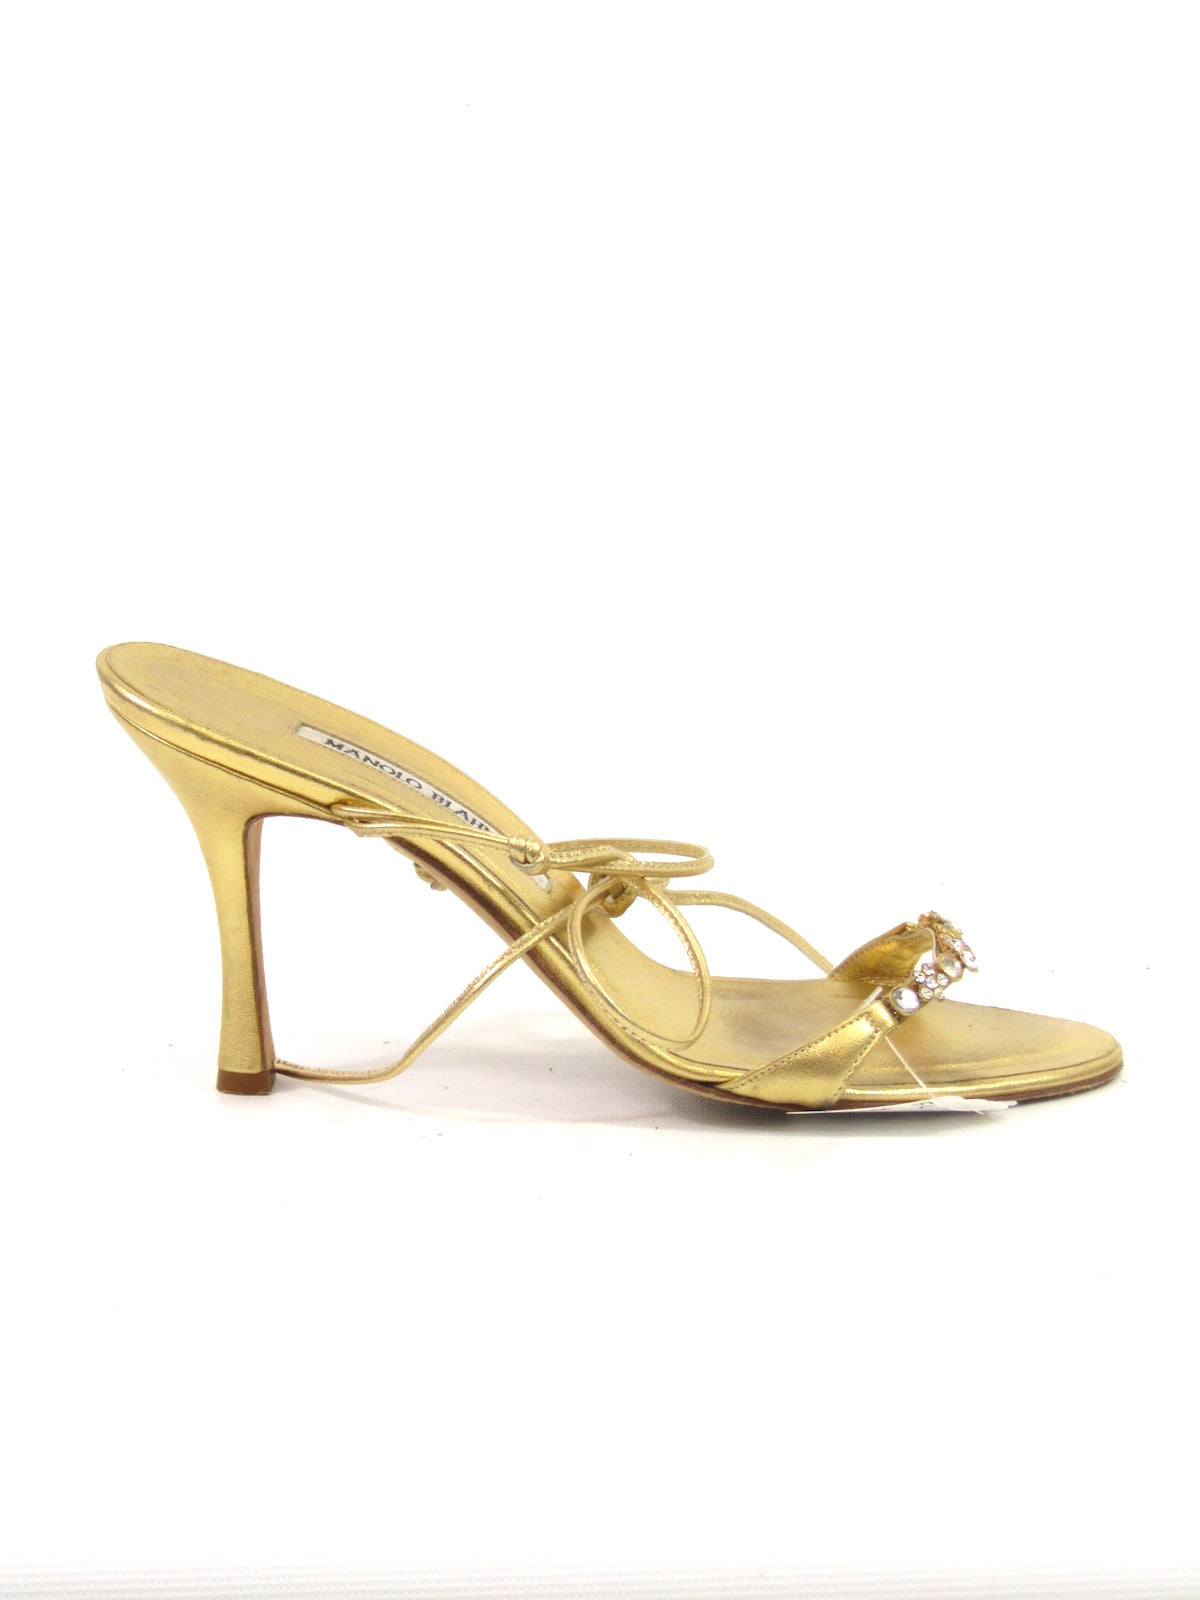 df6b8413c4c7 MANOLO BLAHNIK Women Gold Metallic Leather Crystal Embellishment Strappy  Sandals 38